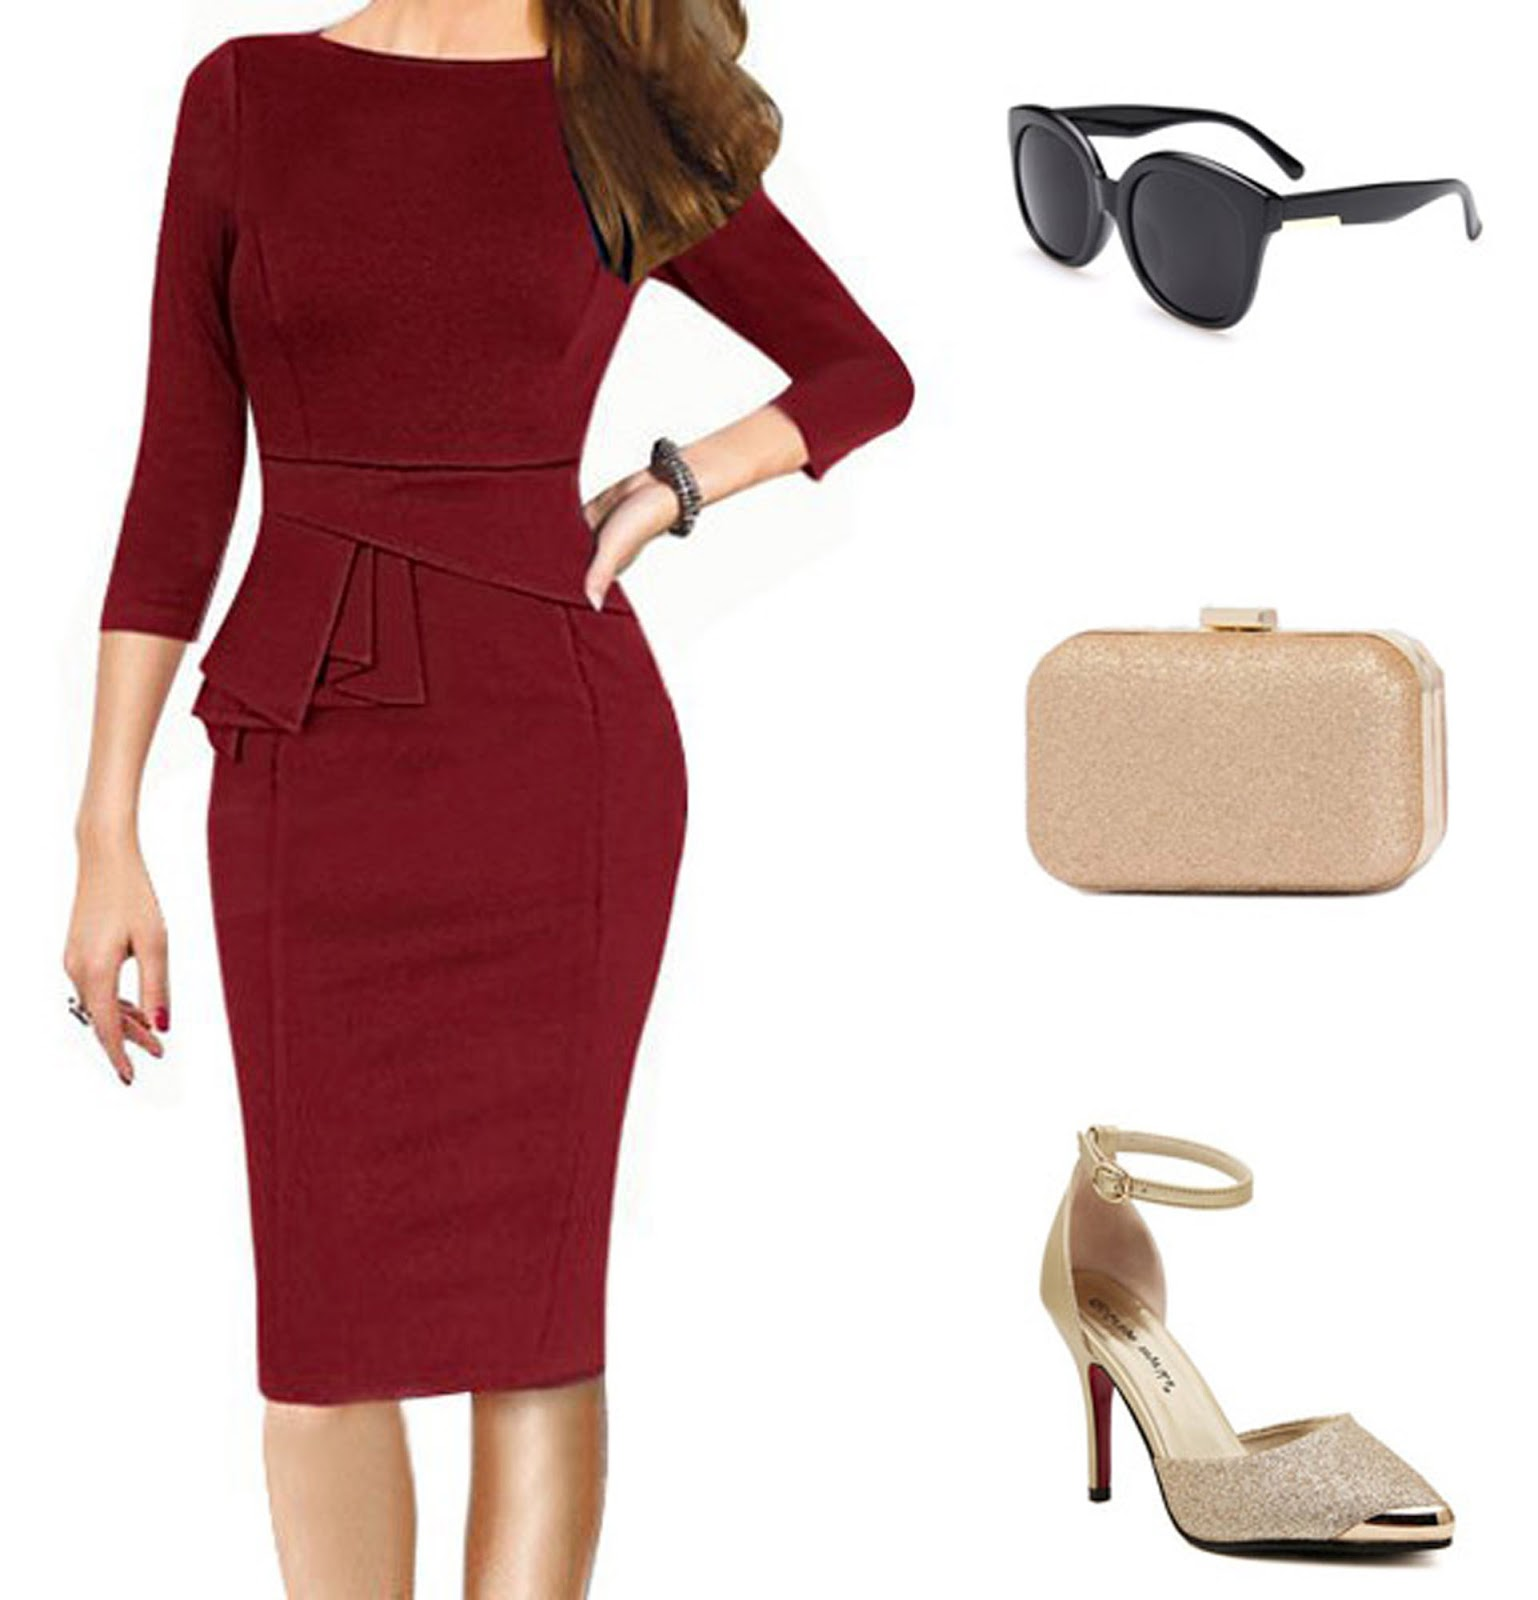 Eniwhere Fashion - Autumn is coming - Sammy Dress